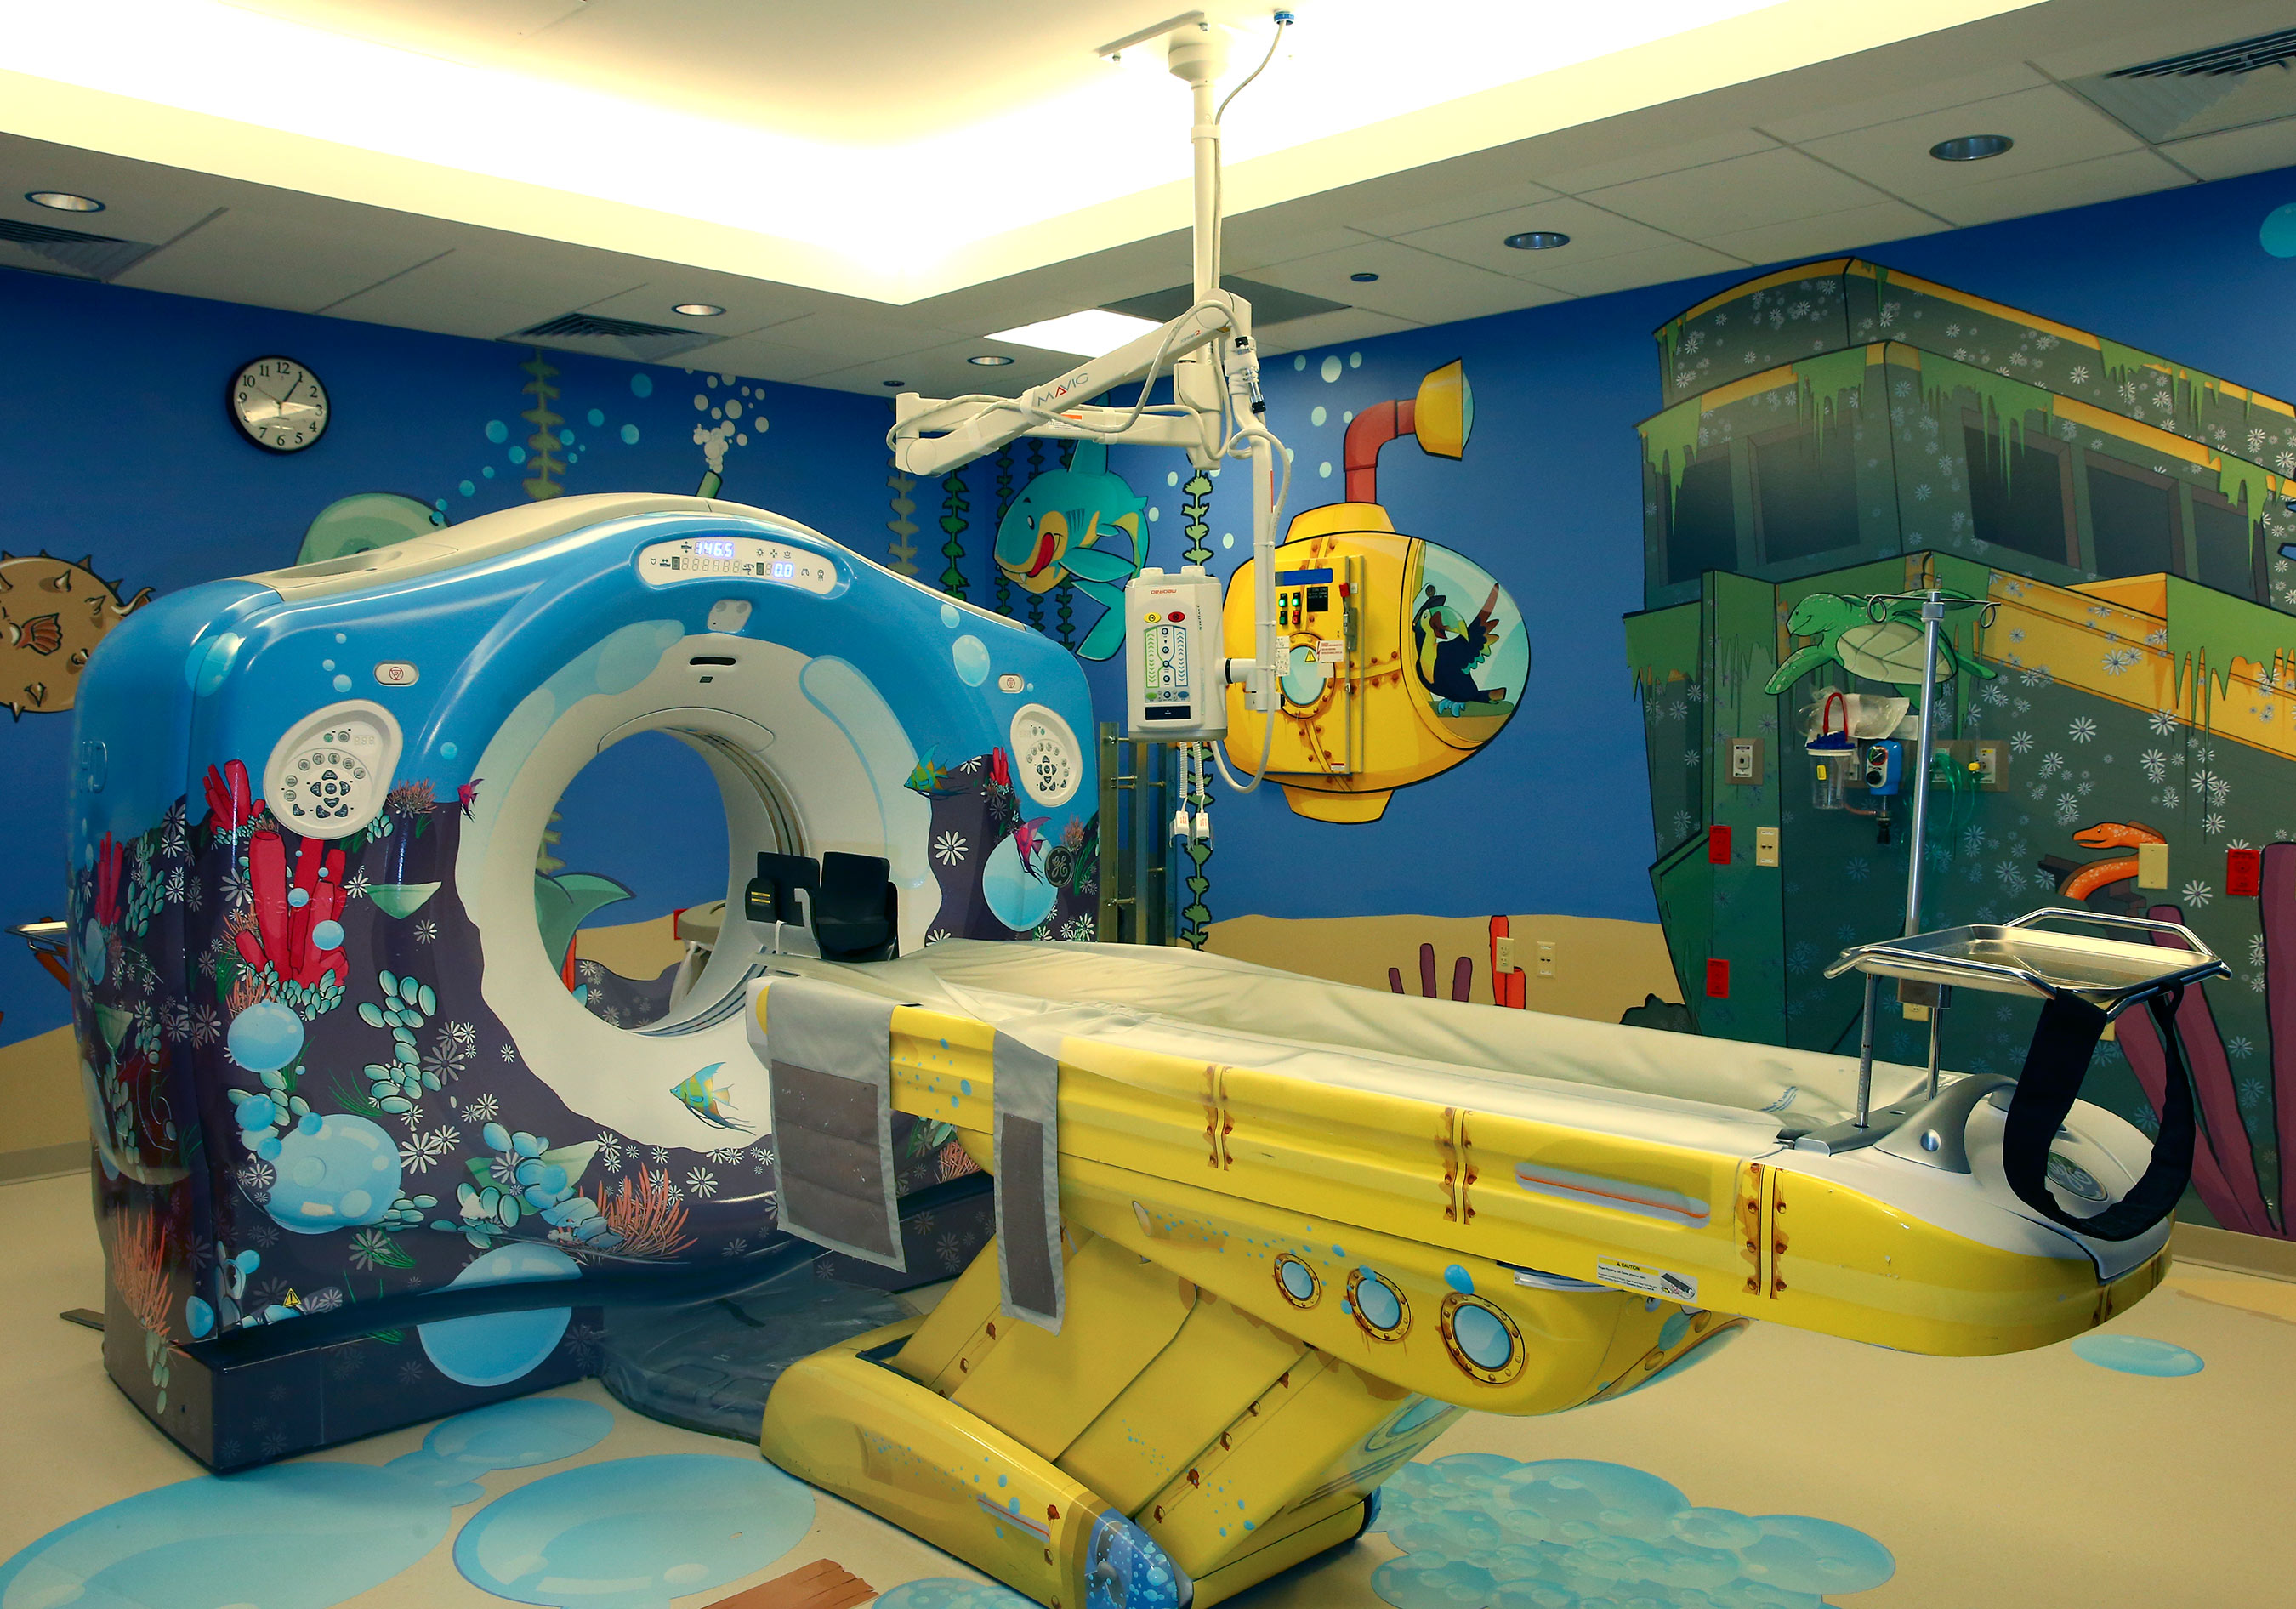 http://www.multivu.com/players/English/7272451-lurie-children-s-hospital-of-chicago-ct-scan-radiation-dose/gallery/image/52c0d0d4-4e81-48ef-8750-0015cb160e2f.HR.jpg